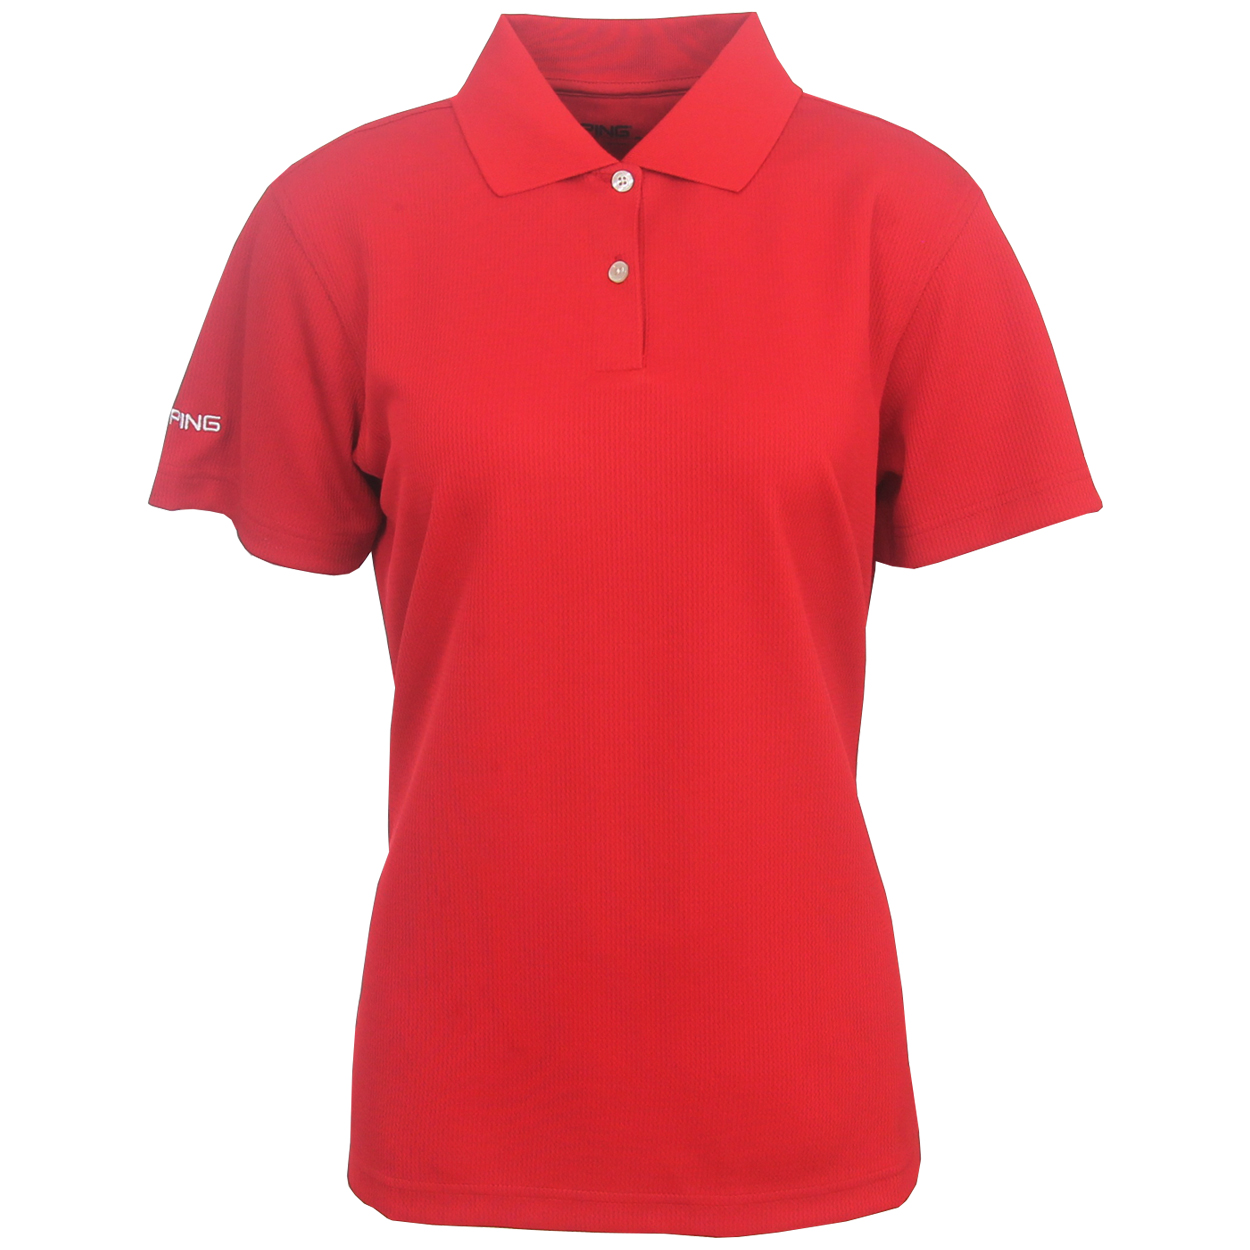 Ping golf women 39 s ace performance polo shirt brand new ebay for Polo brand polo shirts